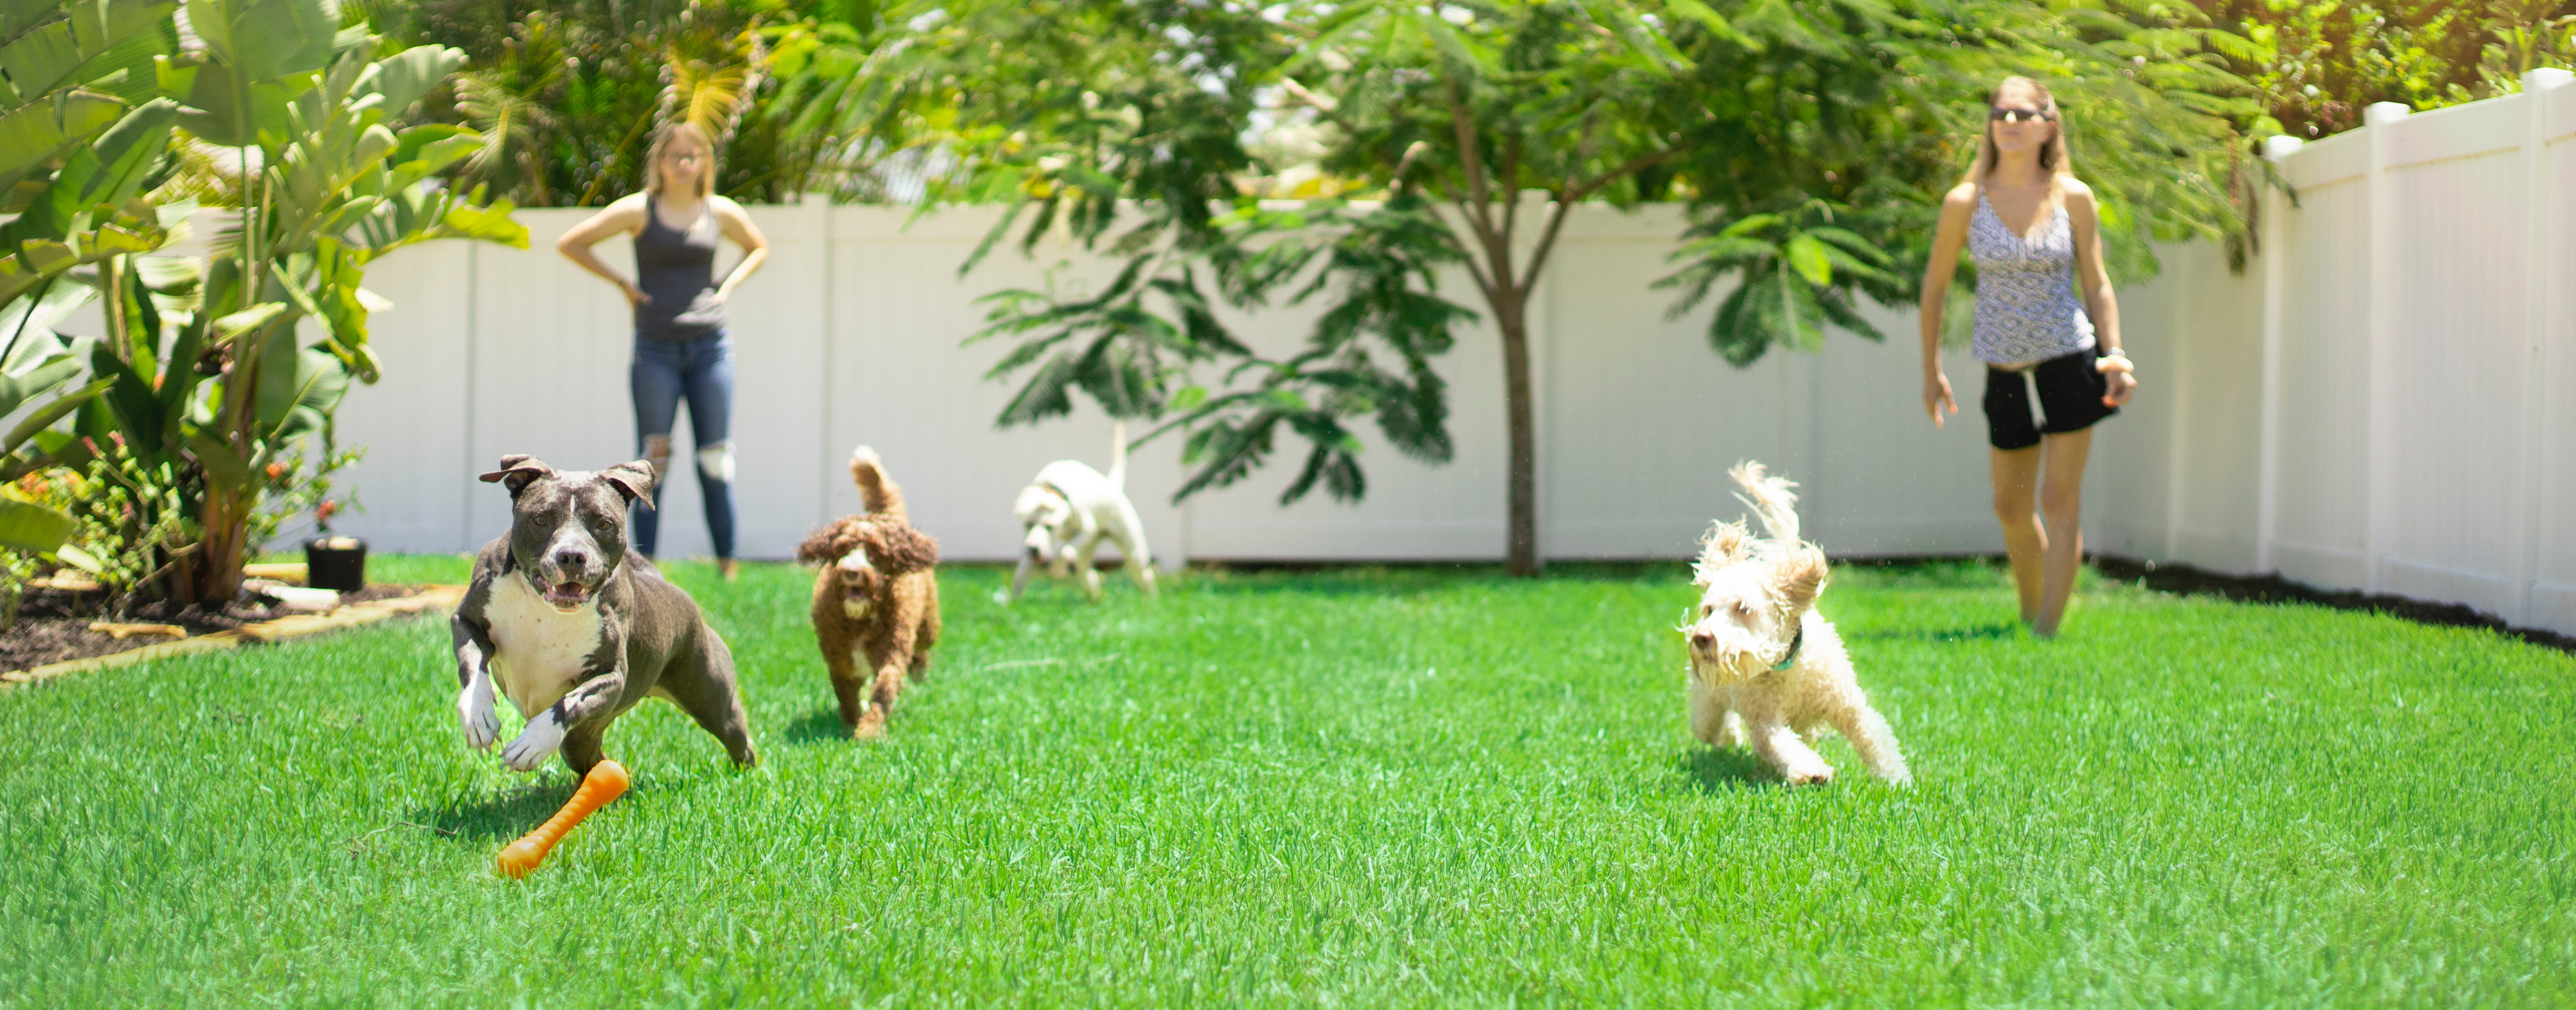 What is the perfect way to choose the right dog